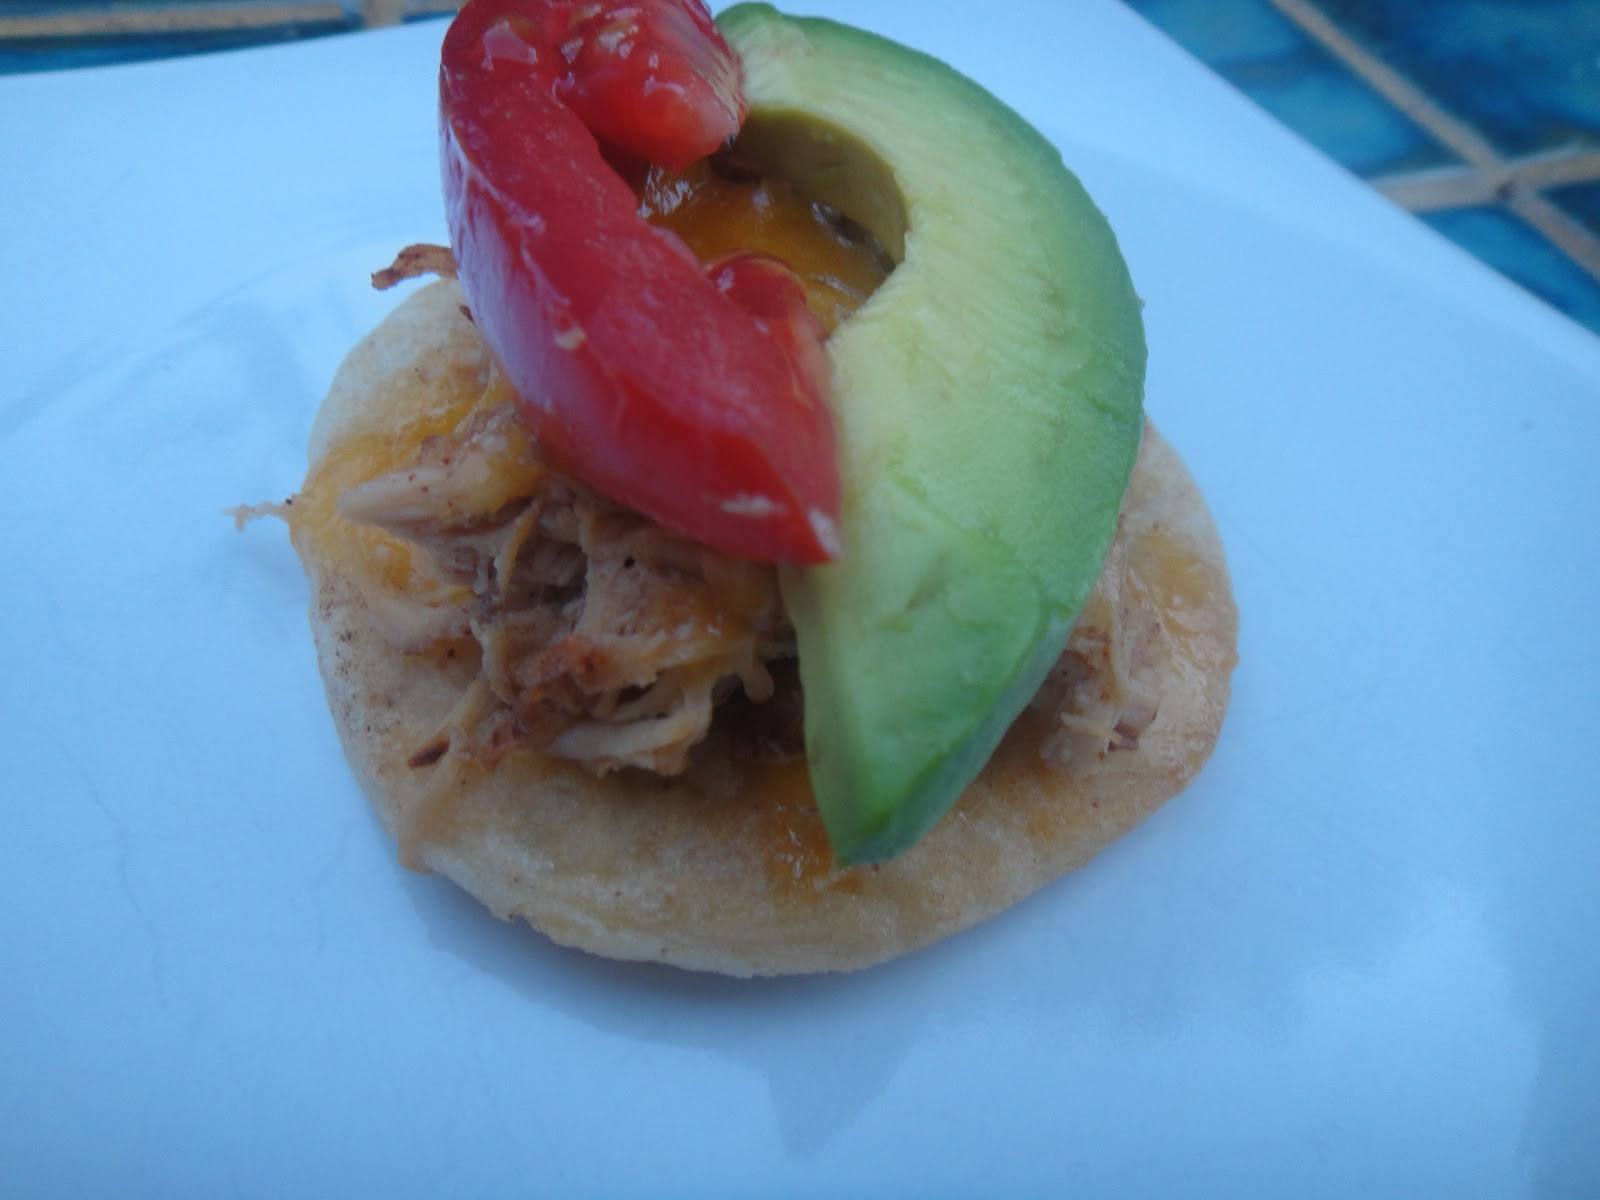 ... great new dish that is gluten free i stumbled upon arepas arepas are